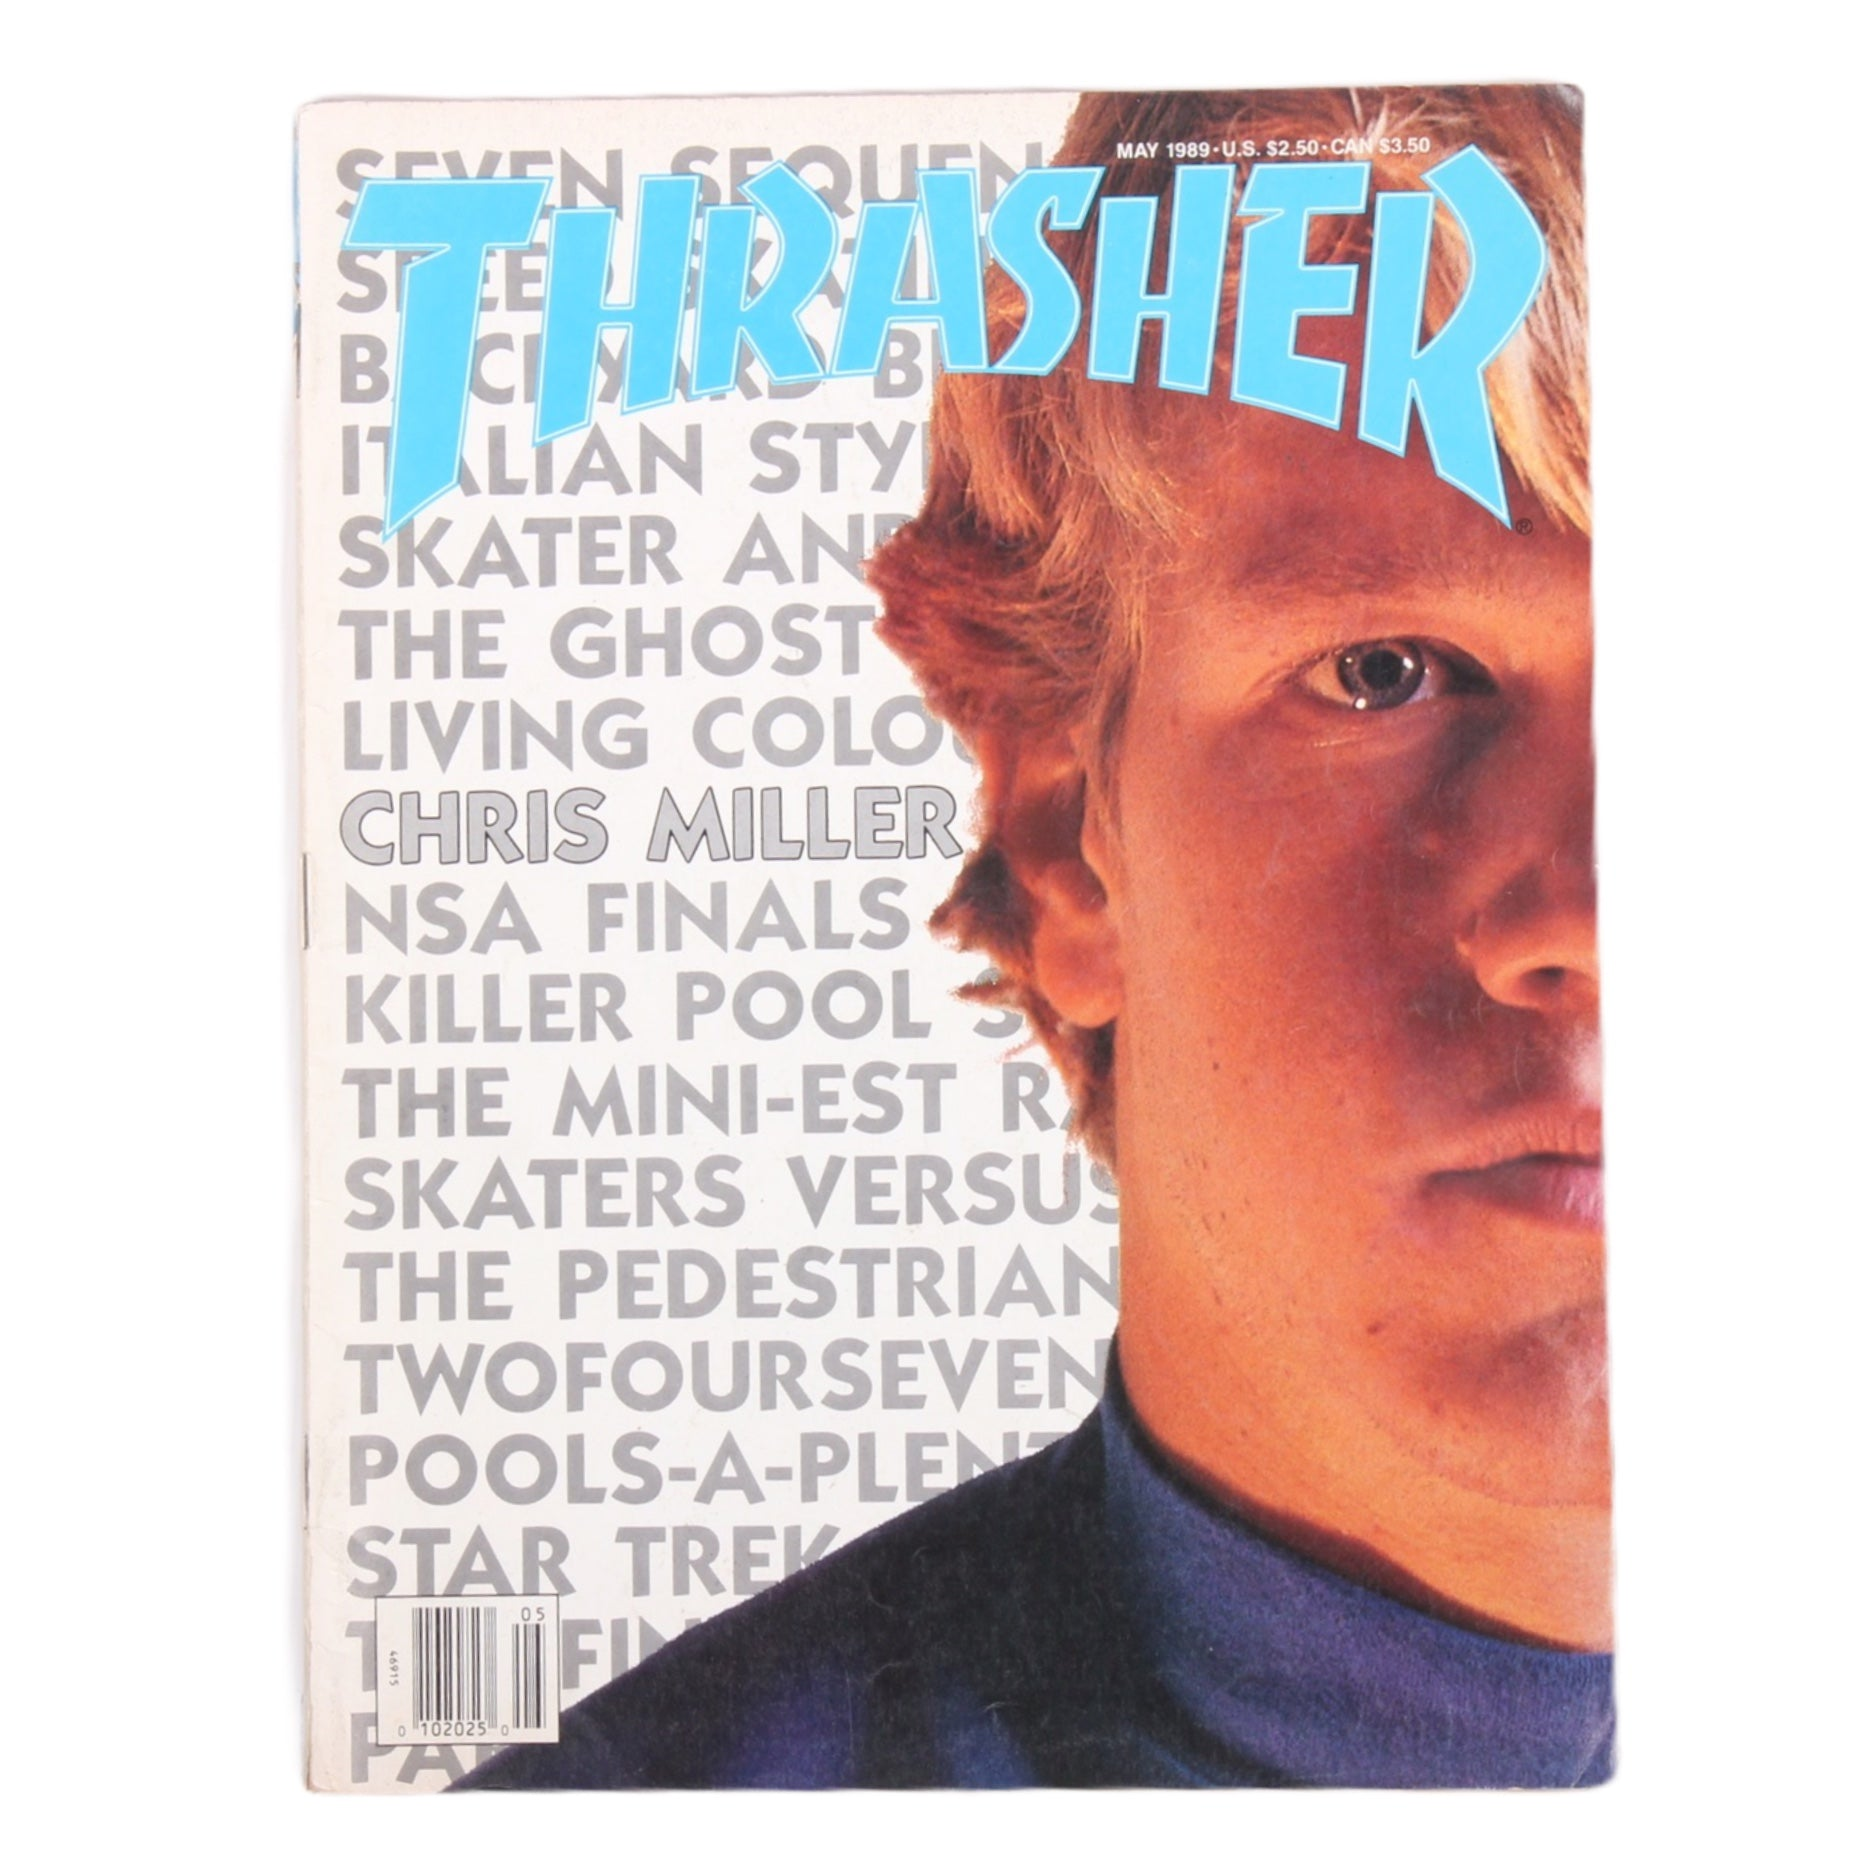 Overripe Thrasher Magazine May 1989